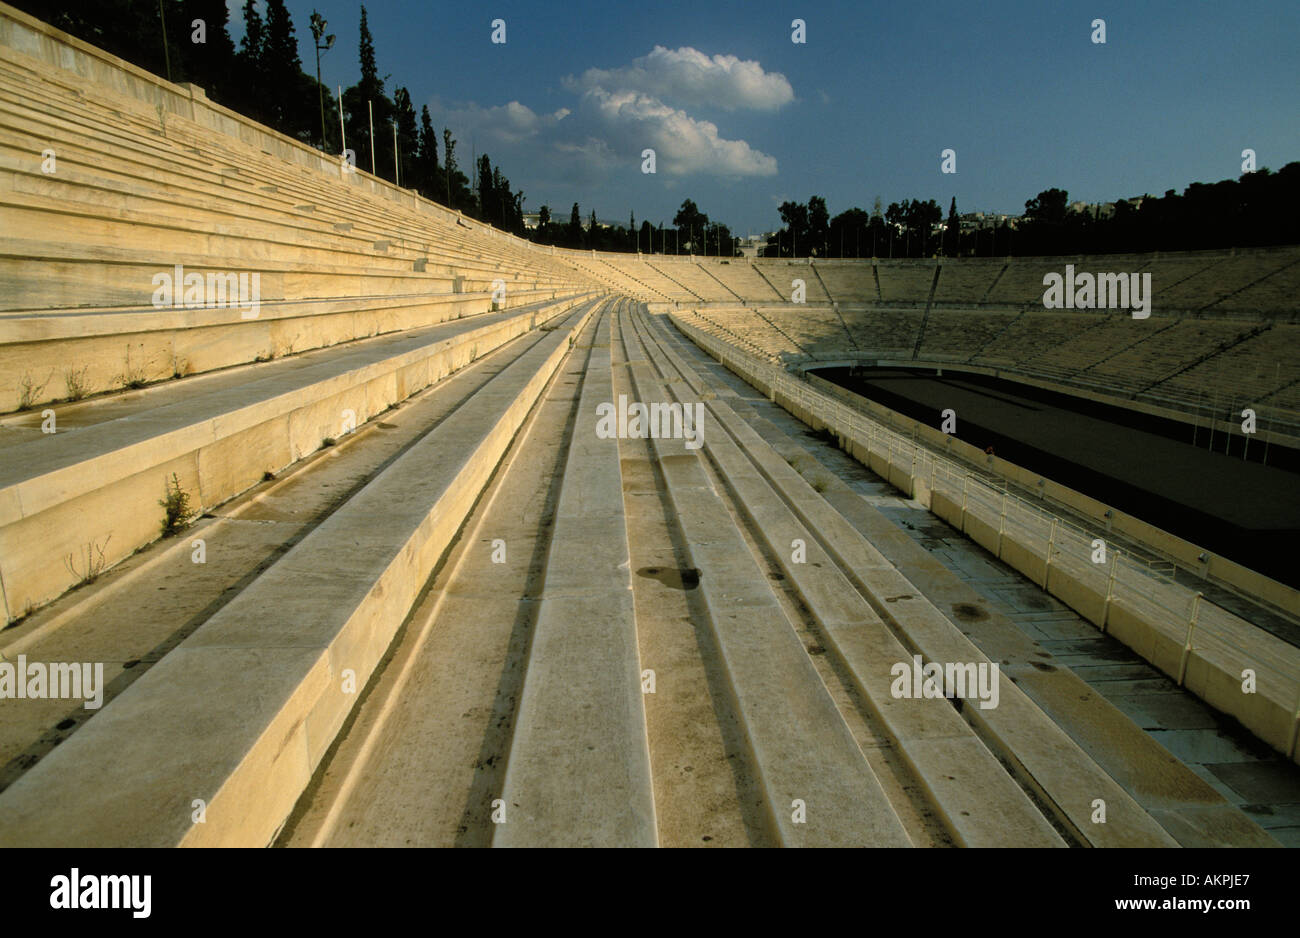 Athens old Olympic Stadion - Stock Image